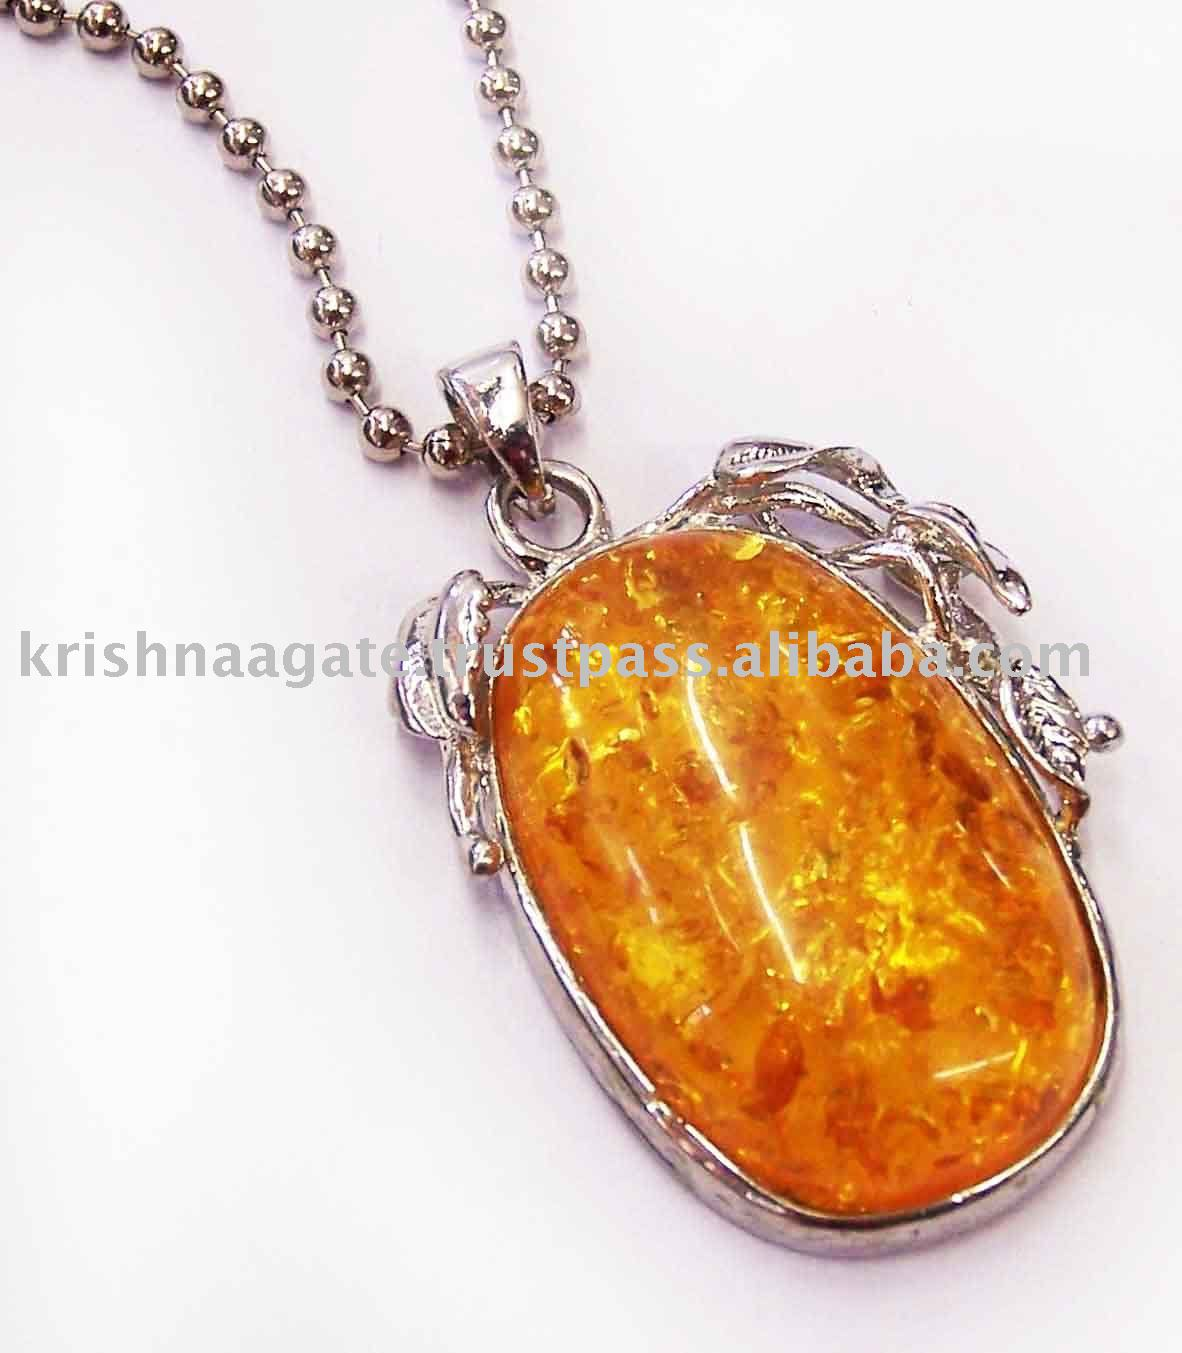 silver on detail pendant fashion alibaba amber semi precious pendants product buy com stone